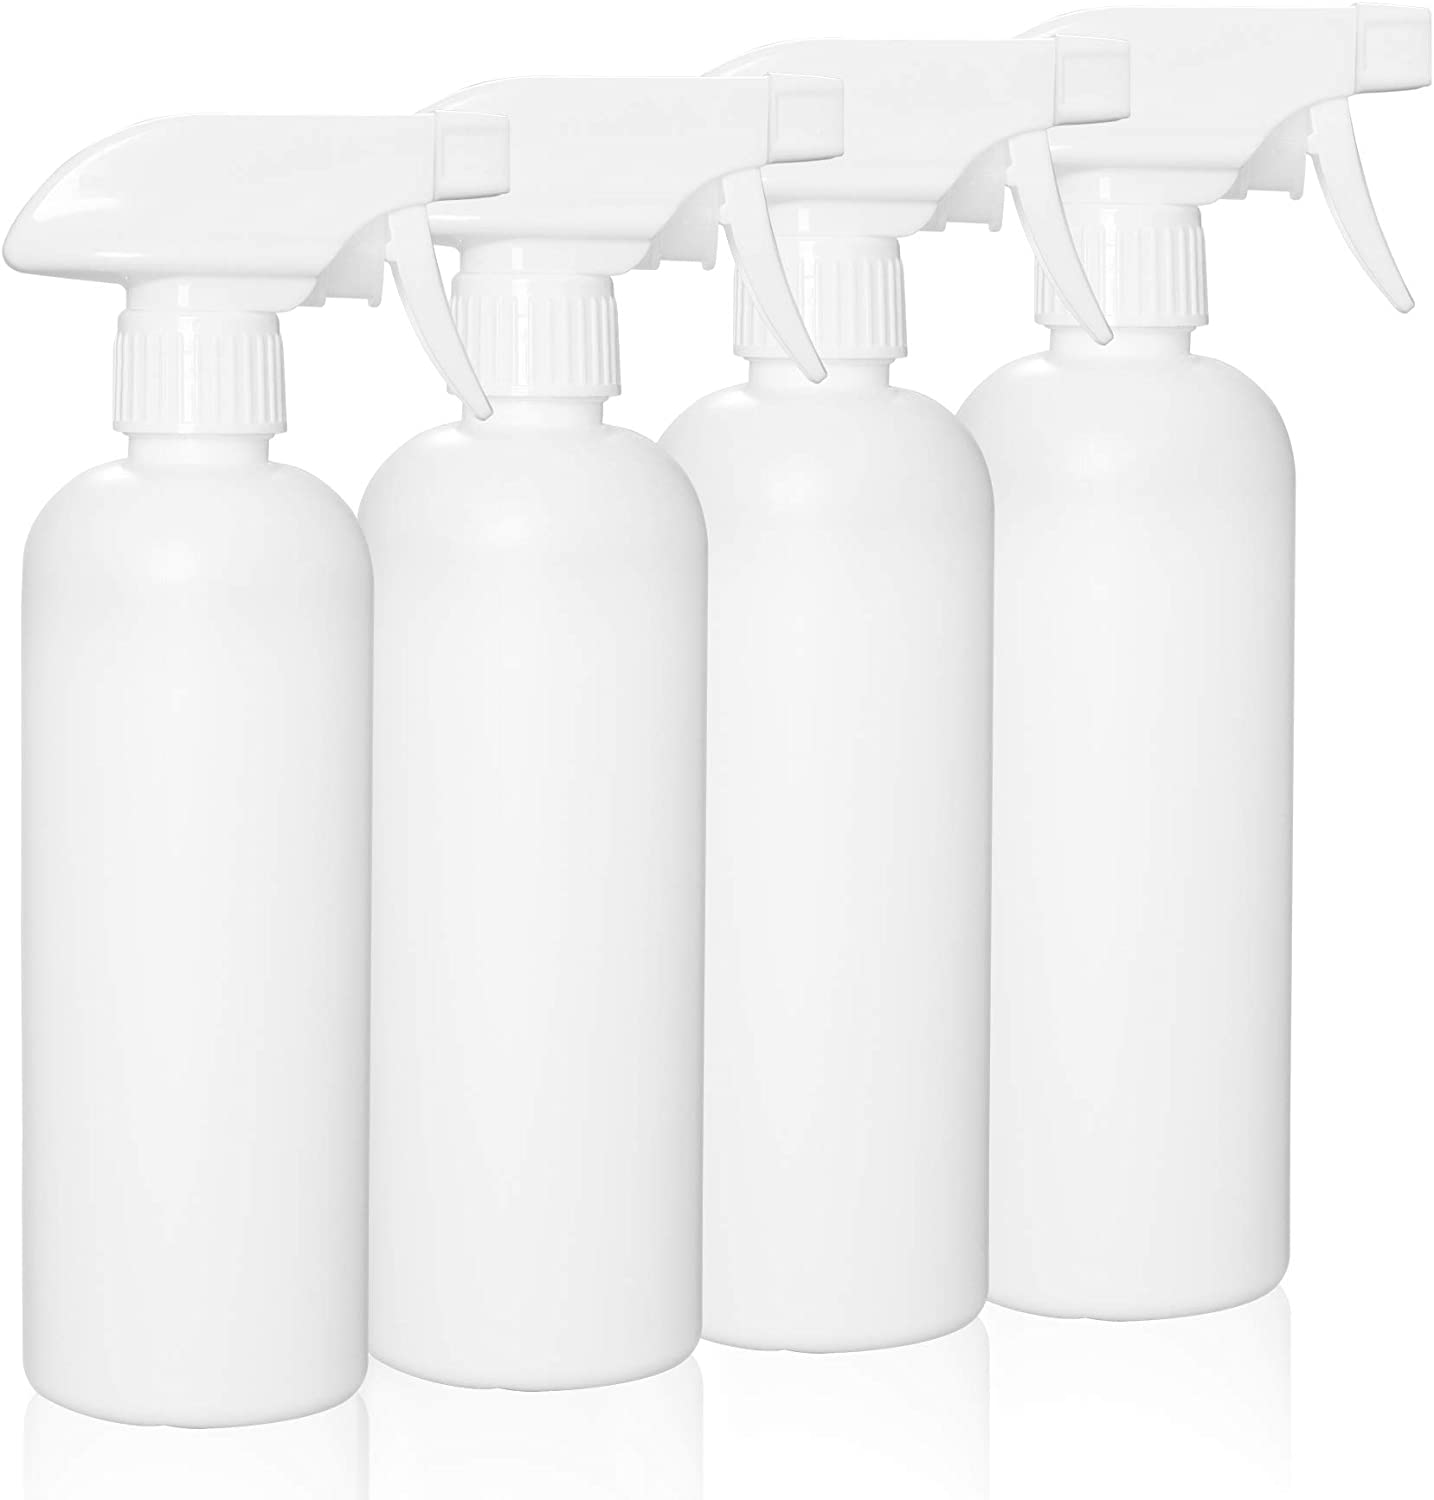 Spray Bottles 4 Pack 16 Oz So Bottle Empty for National uniform free Tucson Mall shipping Cleaning